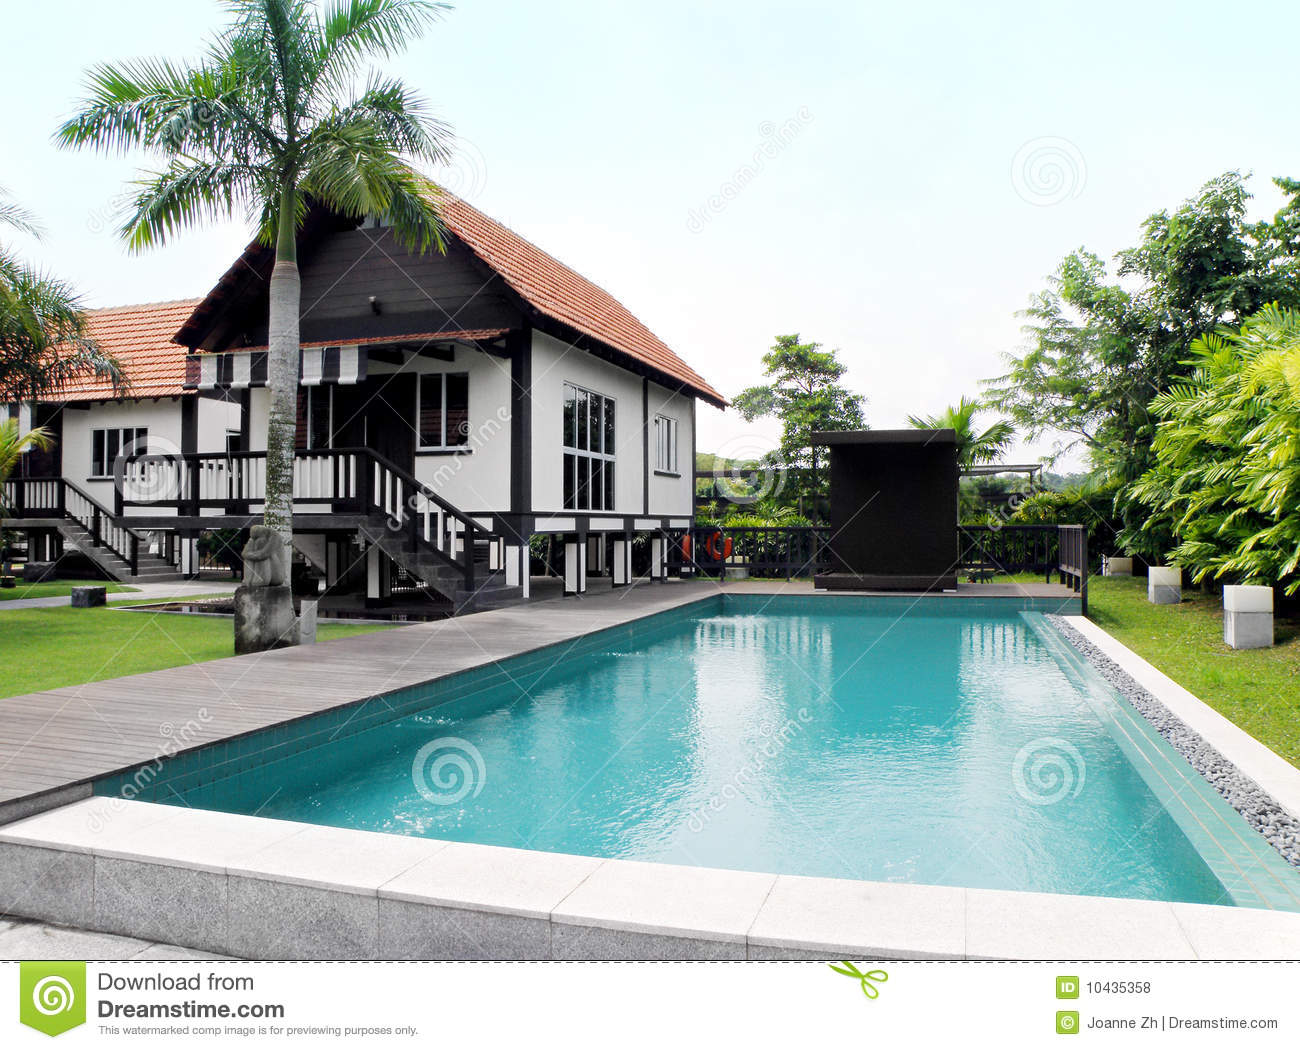 Tropical style house with pool and landscaping